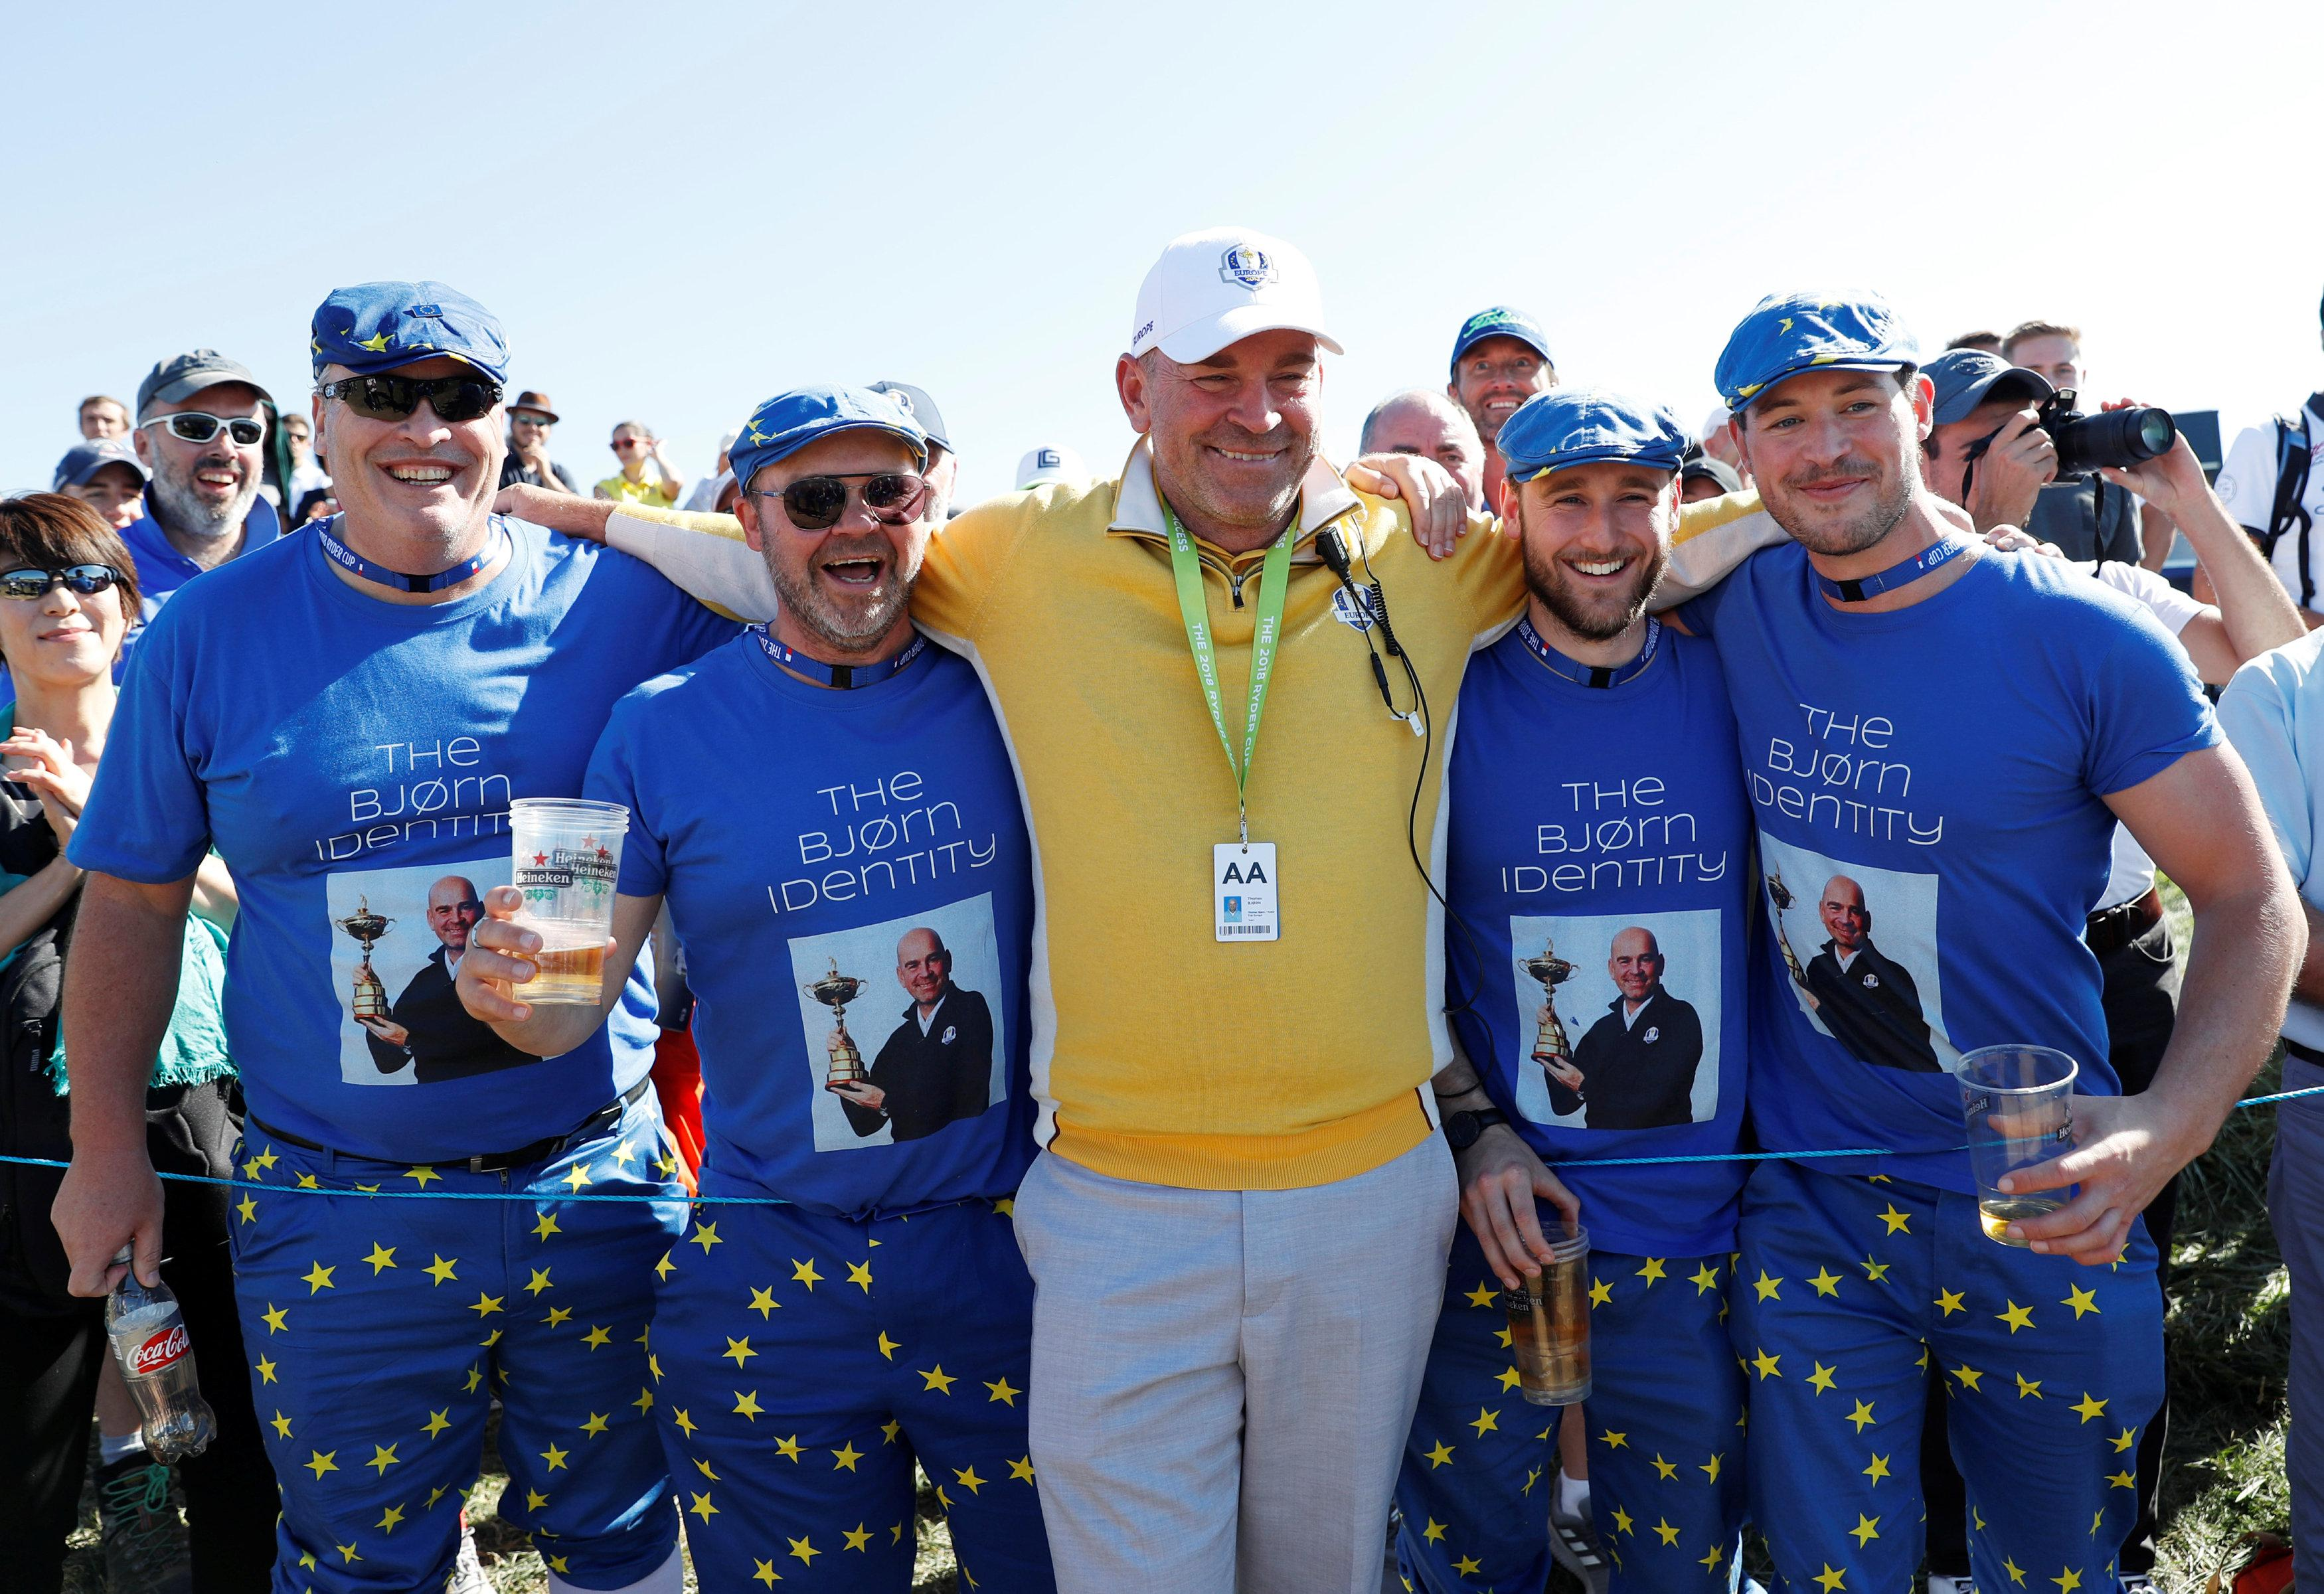 Team Europe captain Thomas Bjorn poses with jubilant fans ahead of the start of the tournament